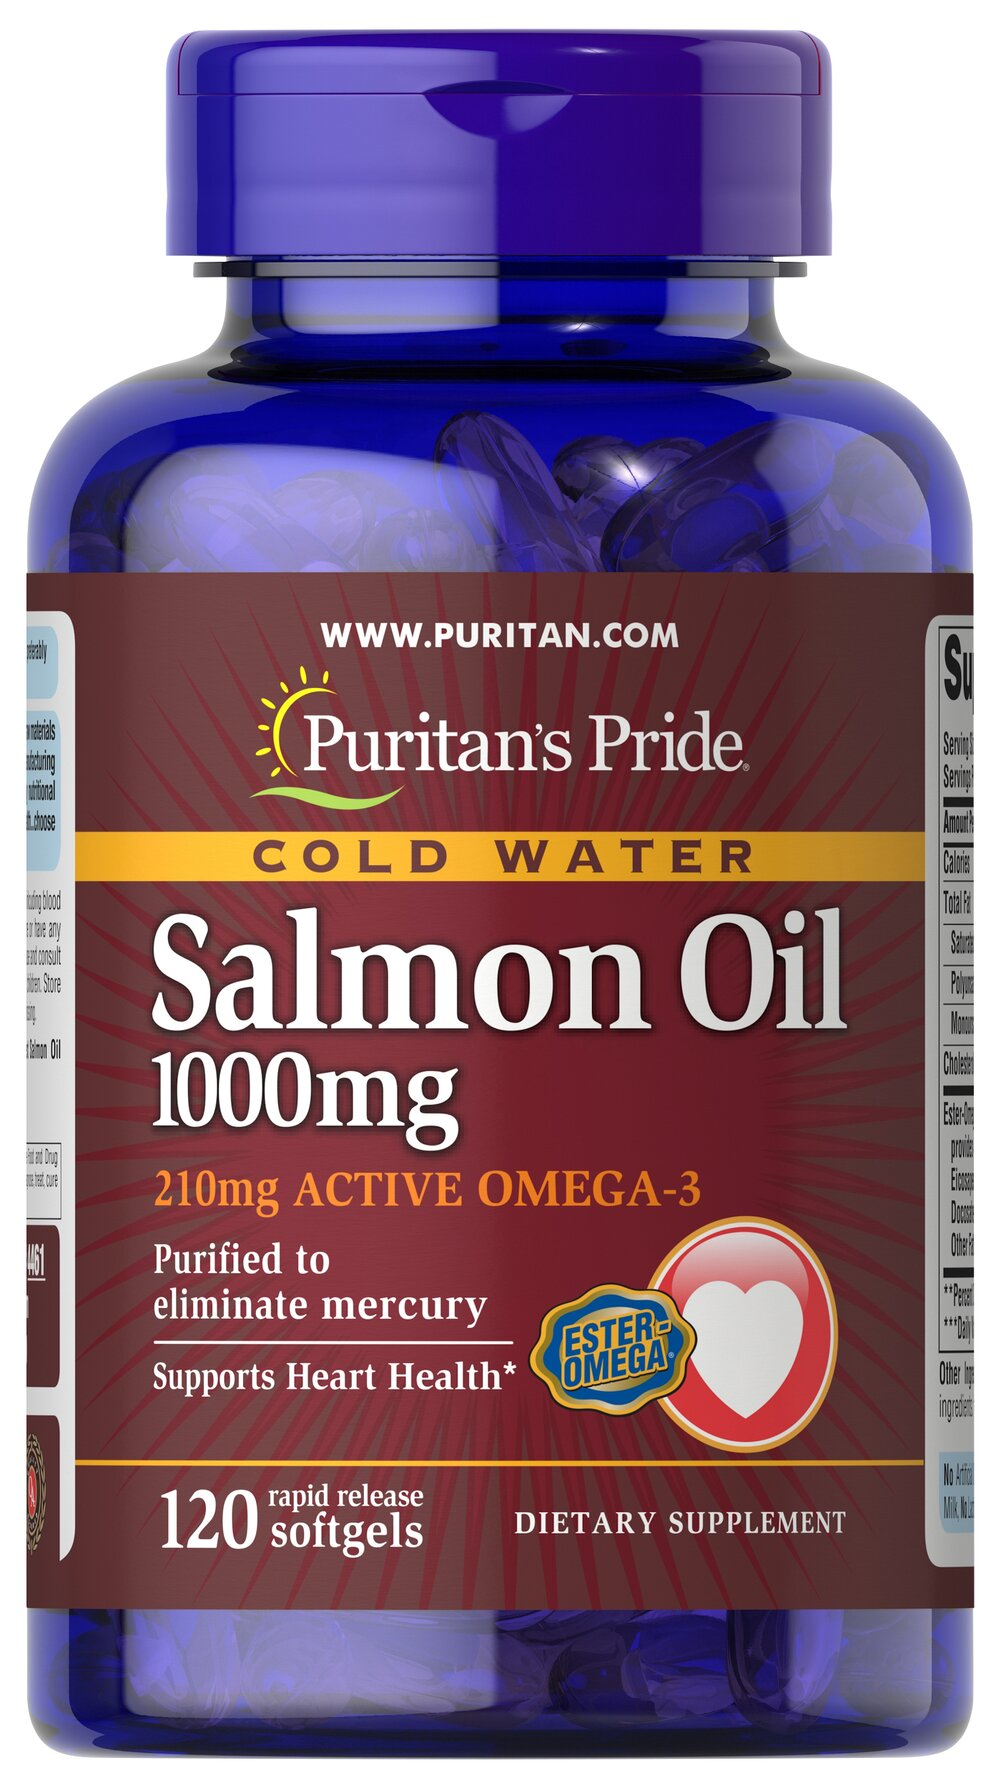 Omega-3 Salmon Oil 1000 mg (210 mg Active Omega-3) <p><strong>Purified to Eliminate Mercury</strong></p><p>Puritan's Pride Salmon Oil contains the finest Salmon Oil available. Take two softgels two times a day to gain the essential fatty acids your body needs for good health.** Salmon contains a high concentration of Omega-3 fatty acids that have been shown to help promote metabolic, circulatory and heart health.**</p> 120 Softgels 1000 mg $15.99